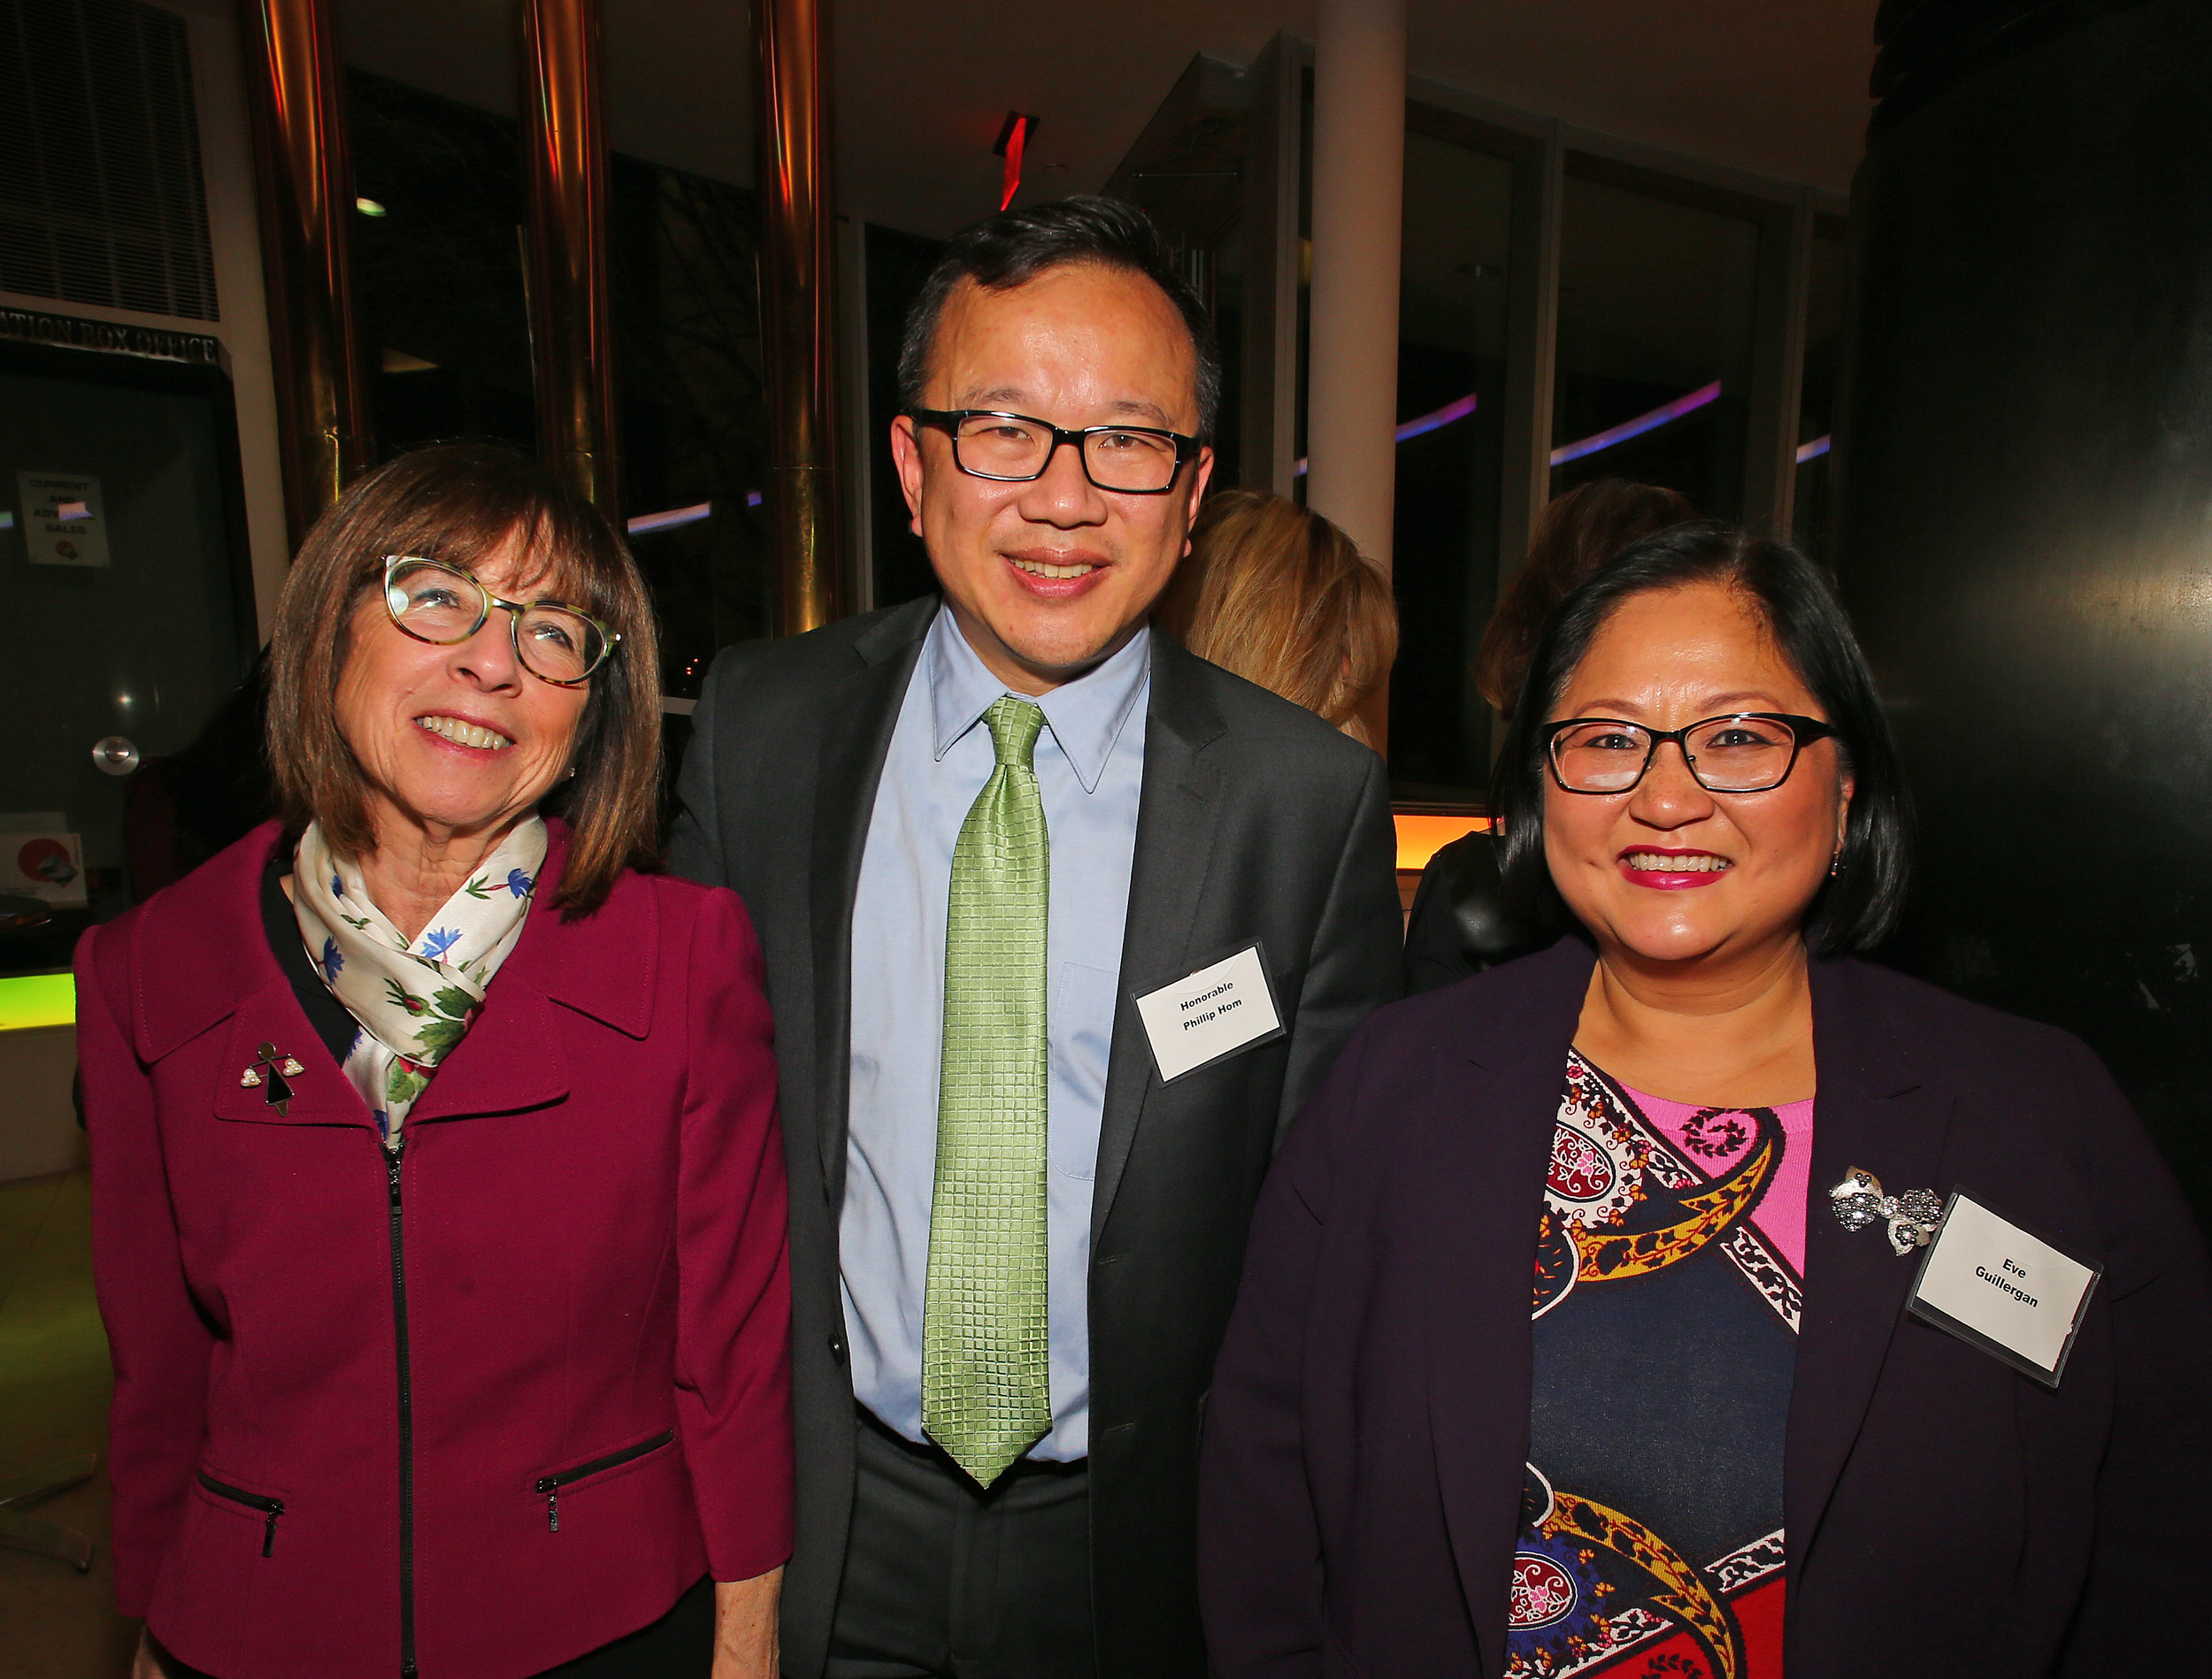 From left, Judge Bernice Siegal, Judge Phillip Hom and Eve Guillergan.